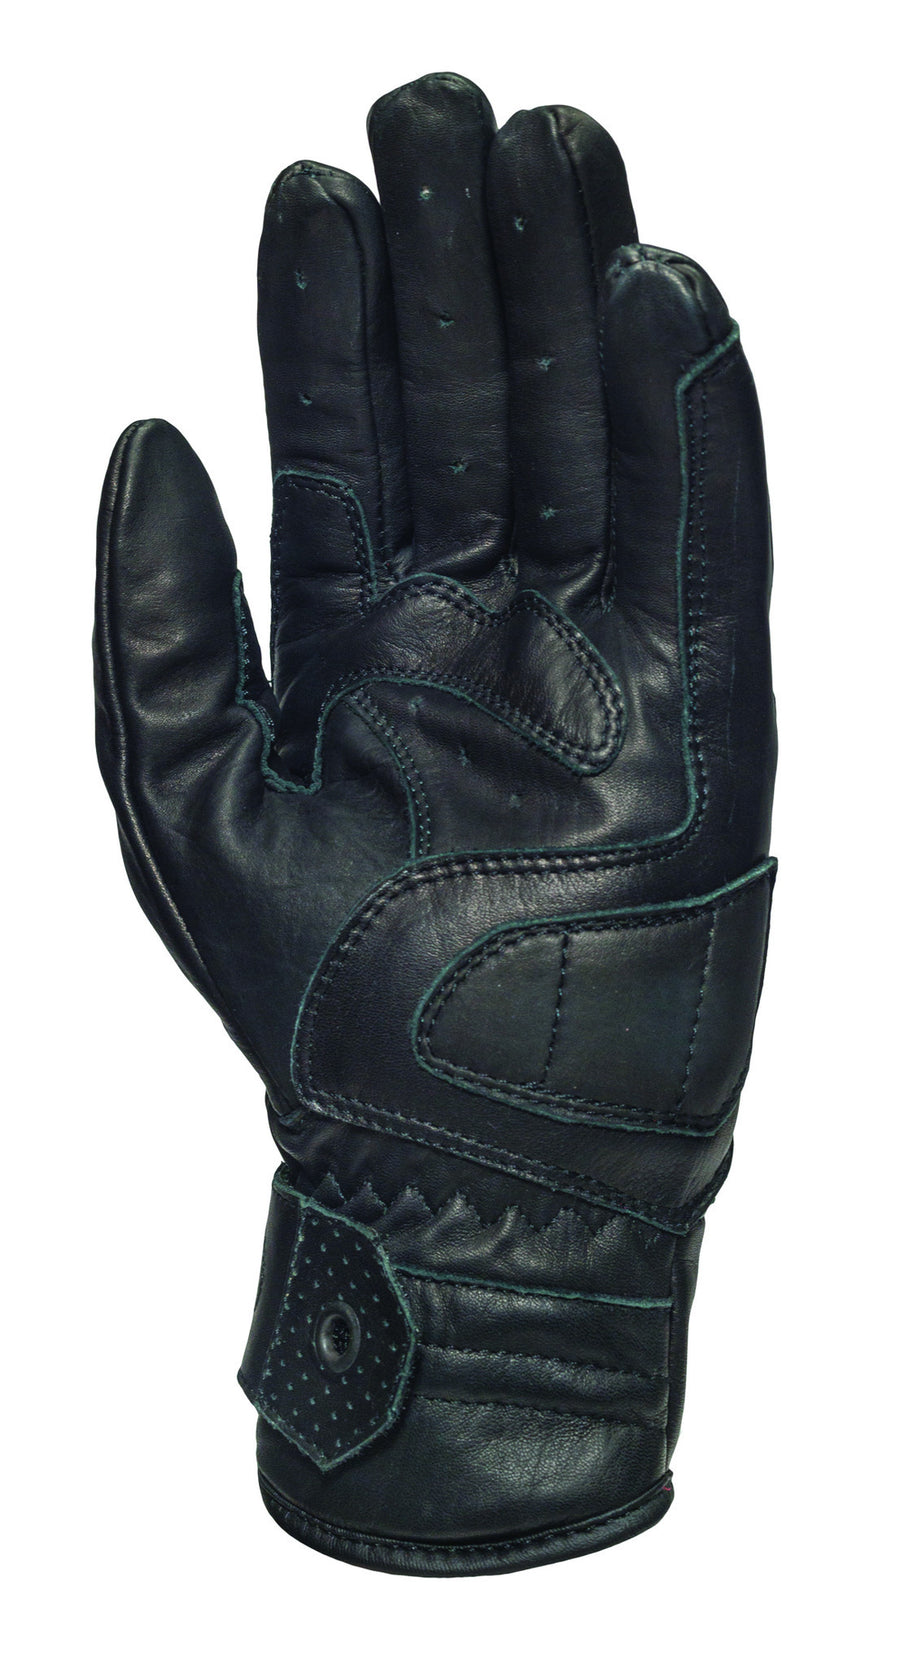 Roland Sands design Ronin Gloves in Black